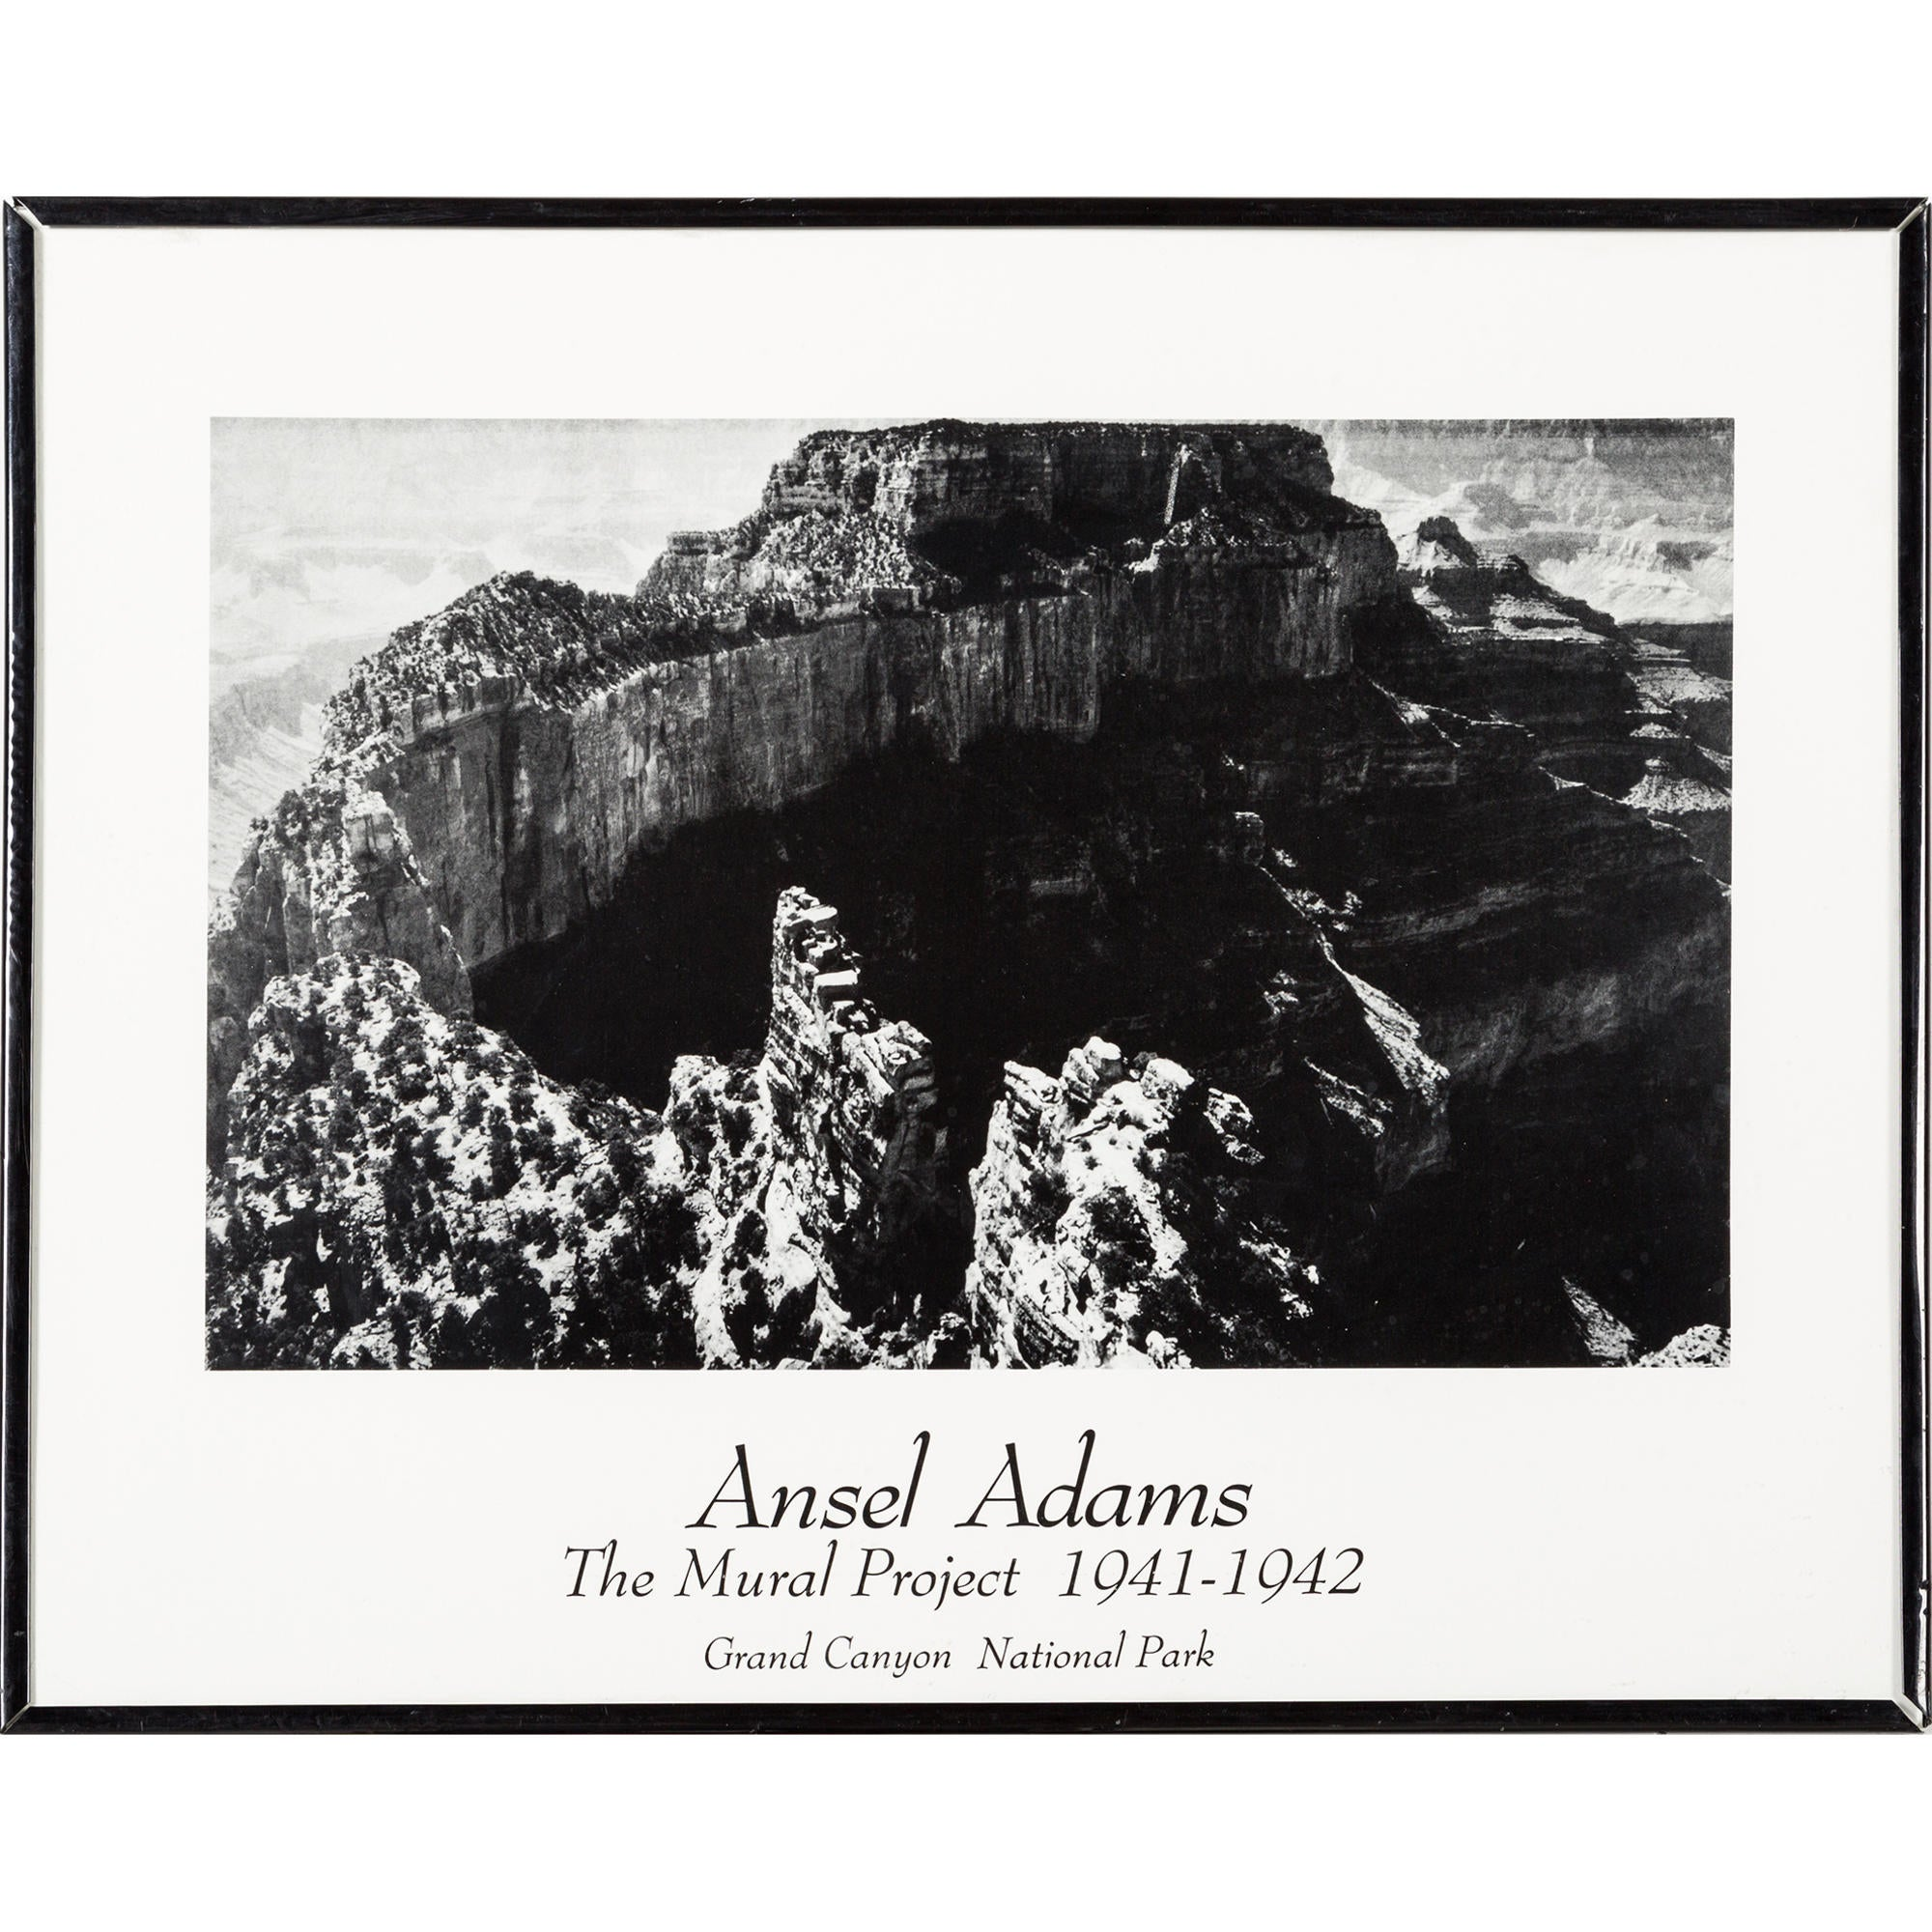 Ansel adams the mural project pts21229 the realreal for Ansel adams mural project